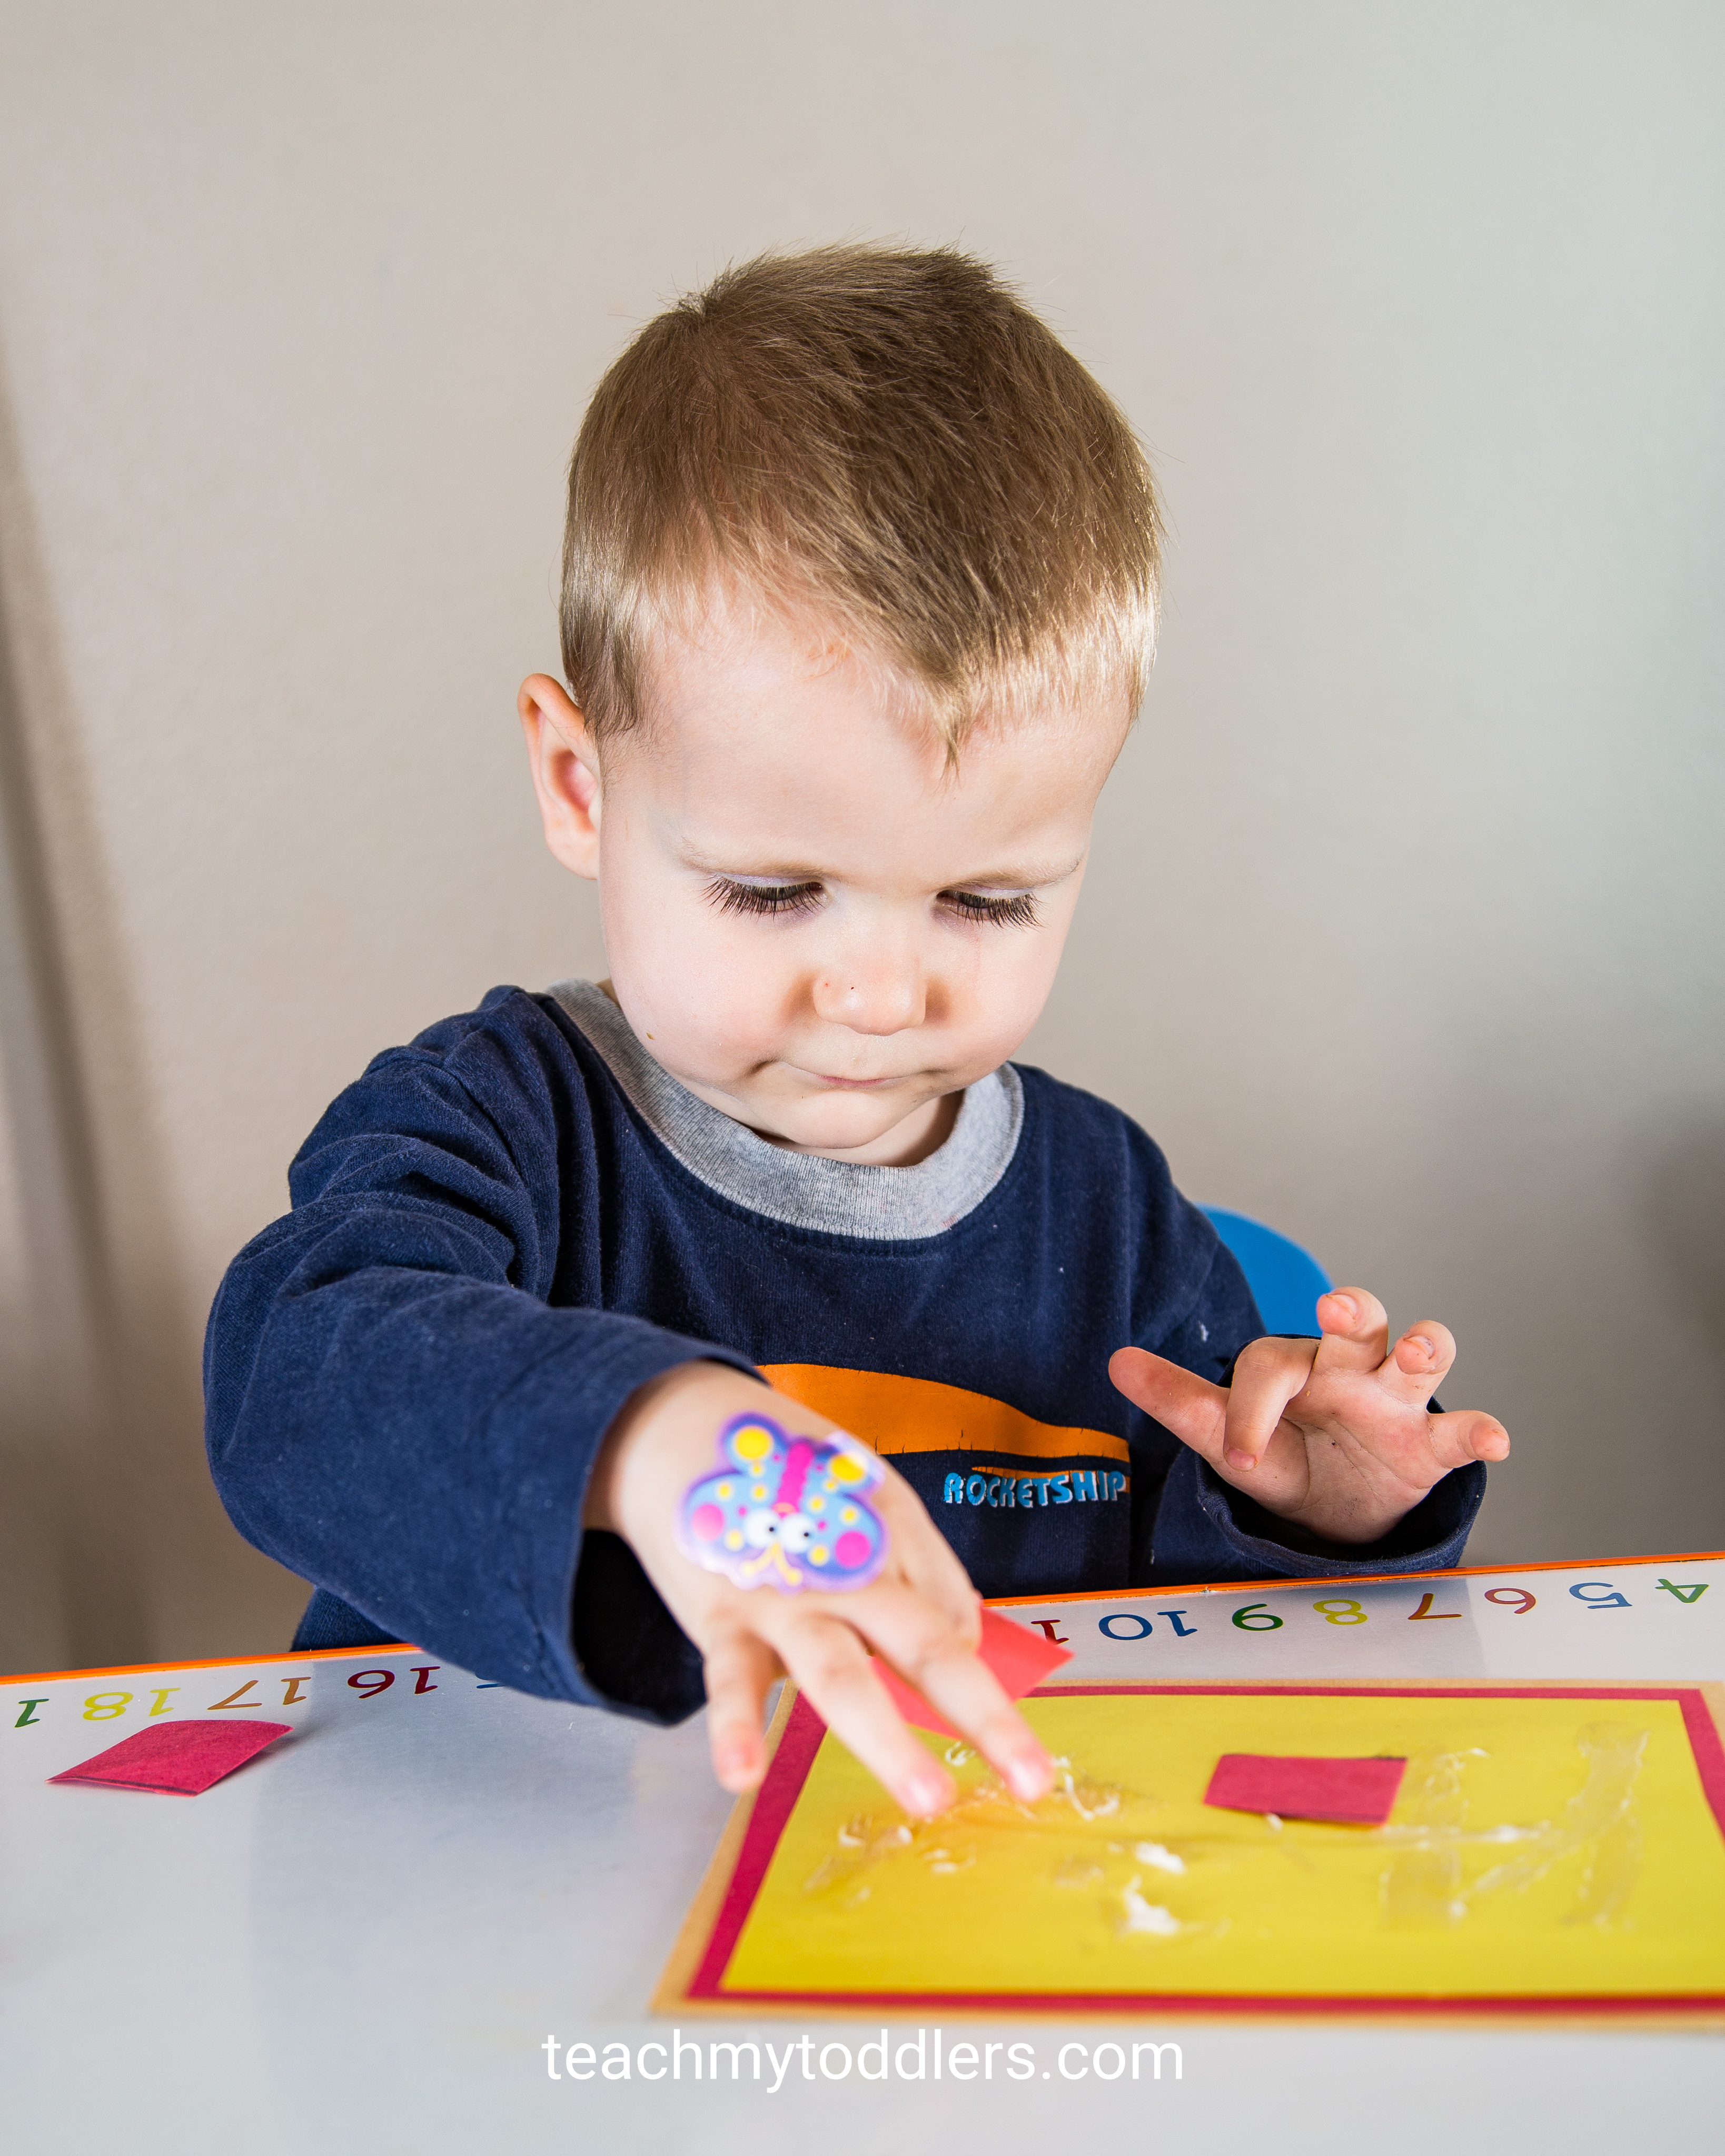 Discover how to use this pizza game to teach toddlers shapes